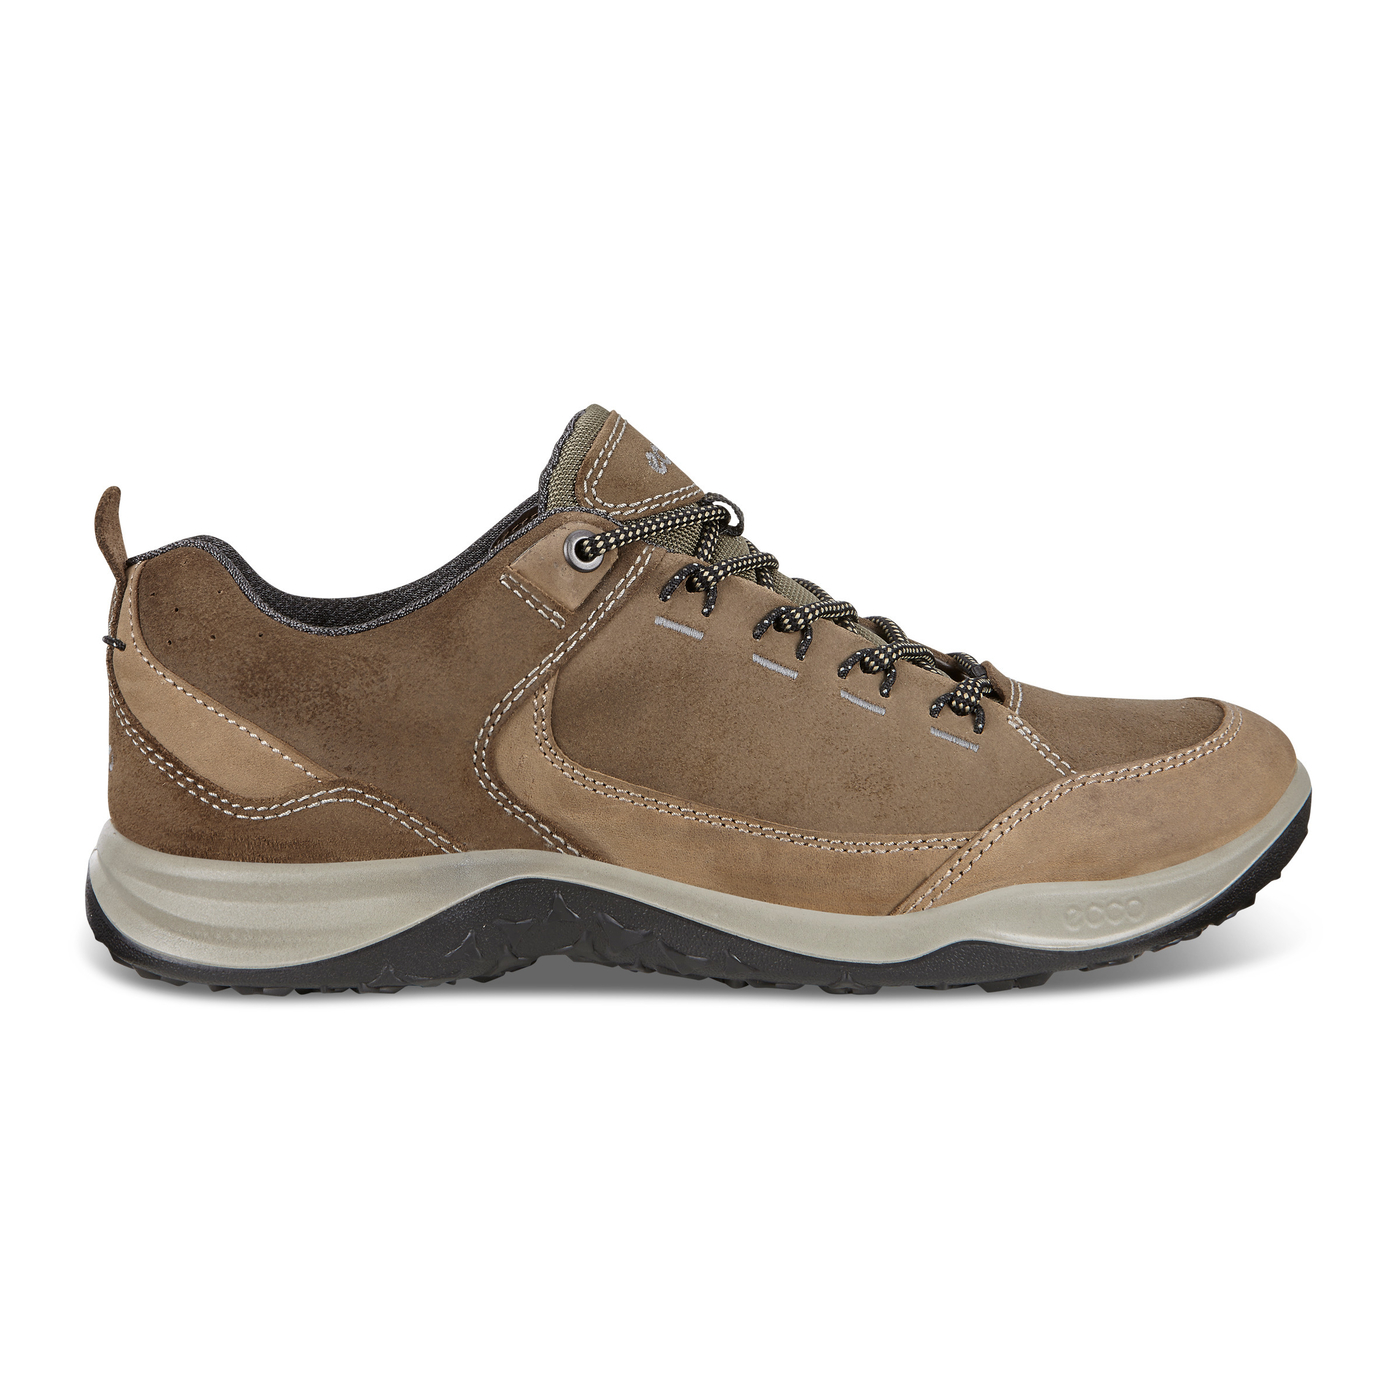 great varieties 50% off unique design ECCO Espinho Men's Outdoor Sneakers | ECCO® Shoes